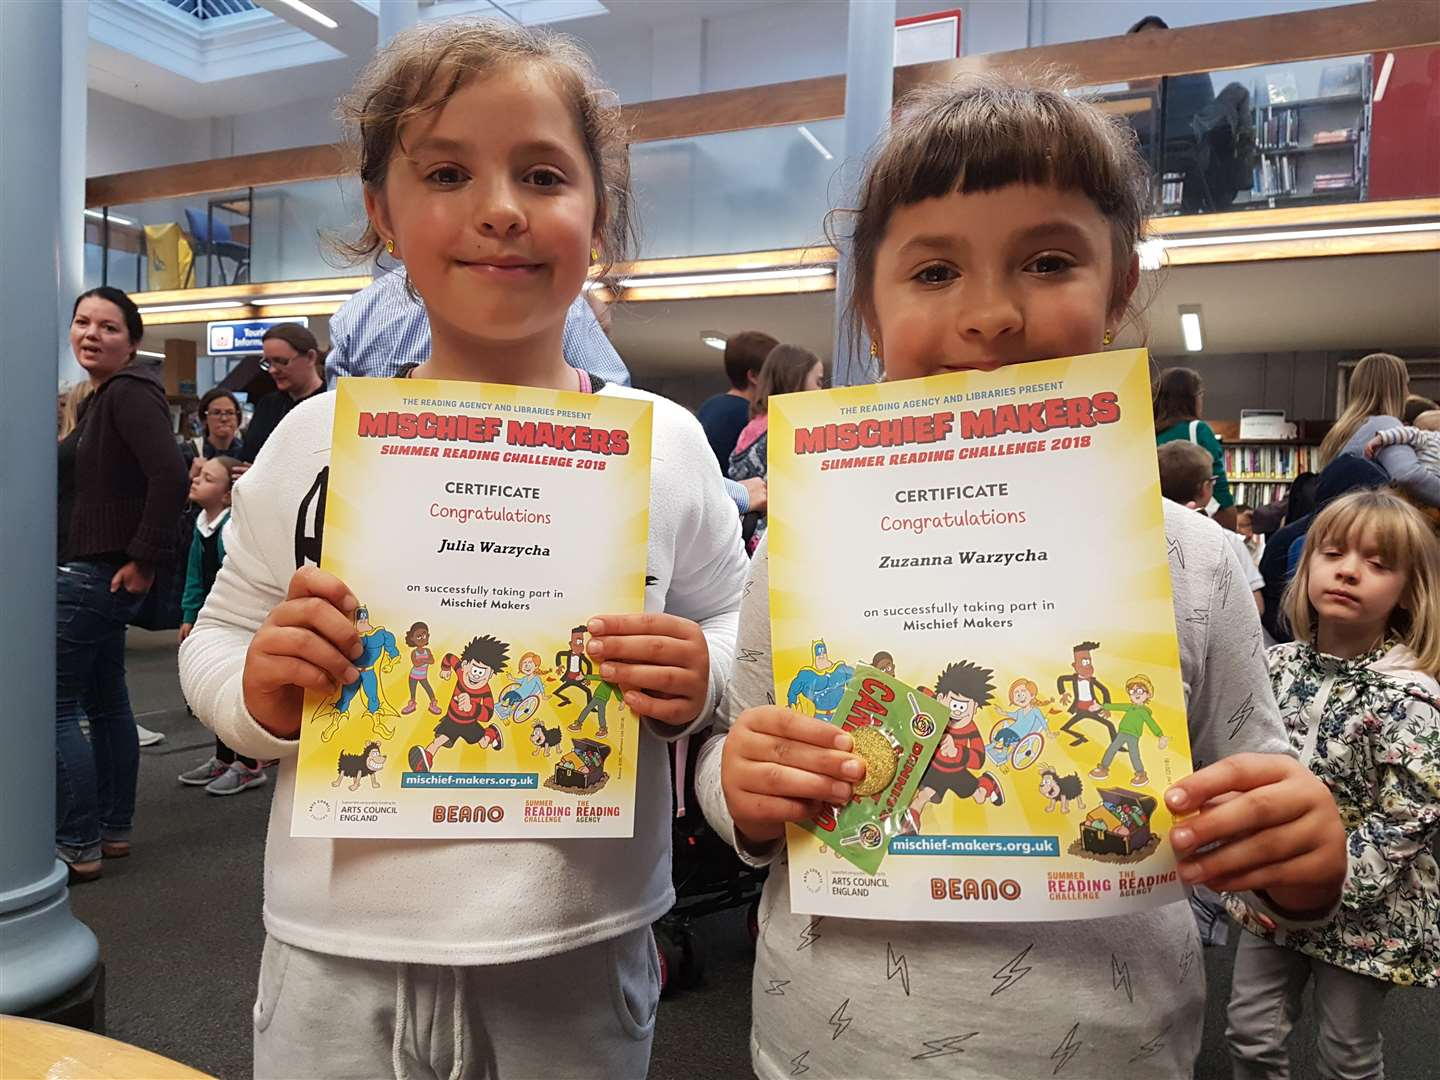 Suffolk Libraries Summer Reading Challenge 2018 - Julia and Zuzanna Warzycha receive their certificates at Sudbury Library. (4476884)